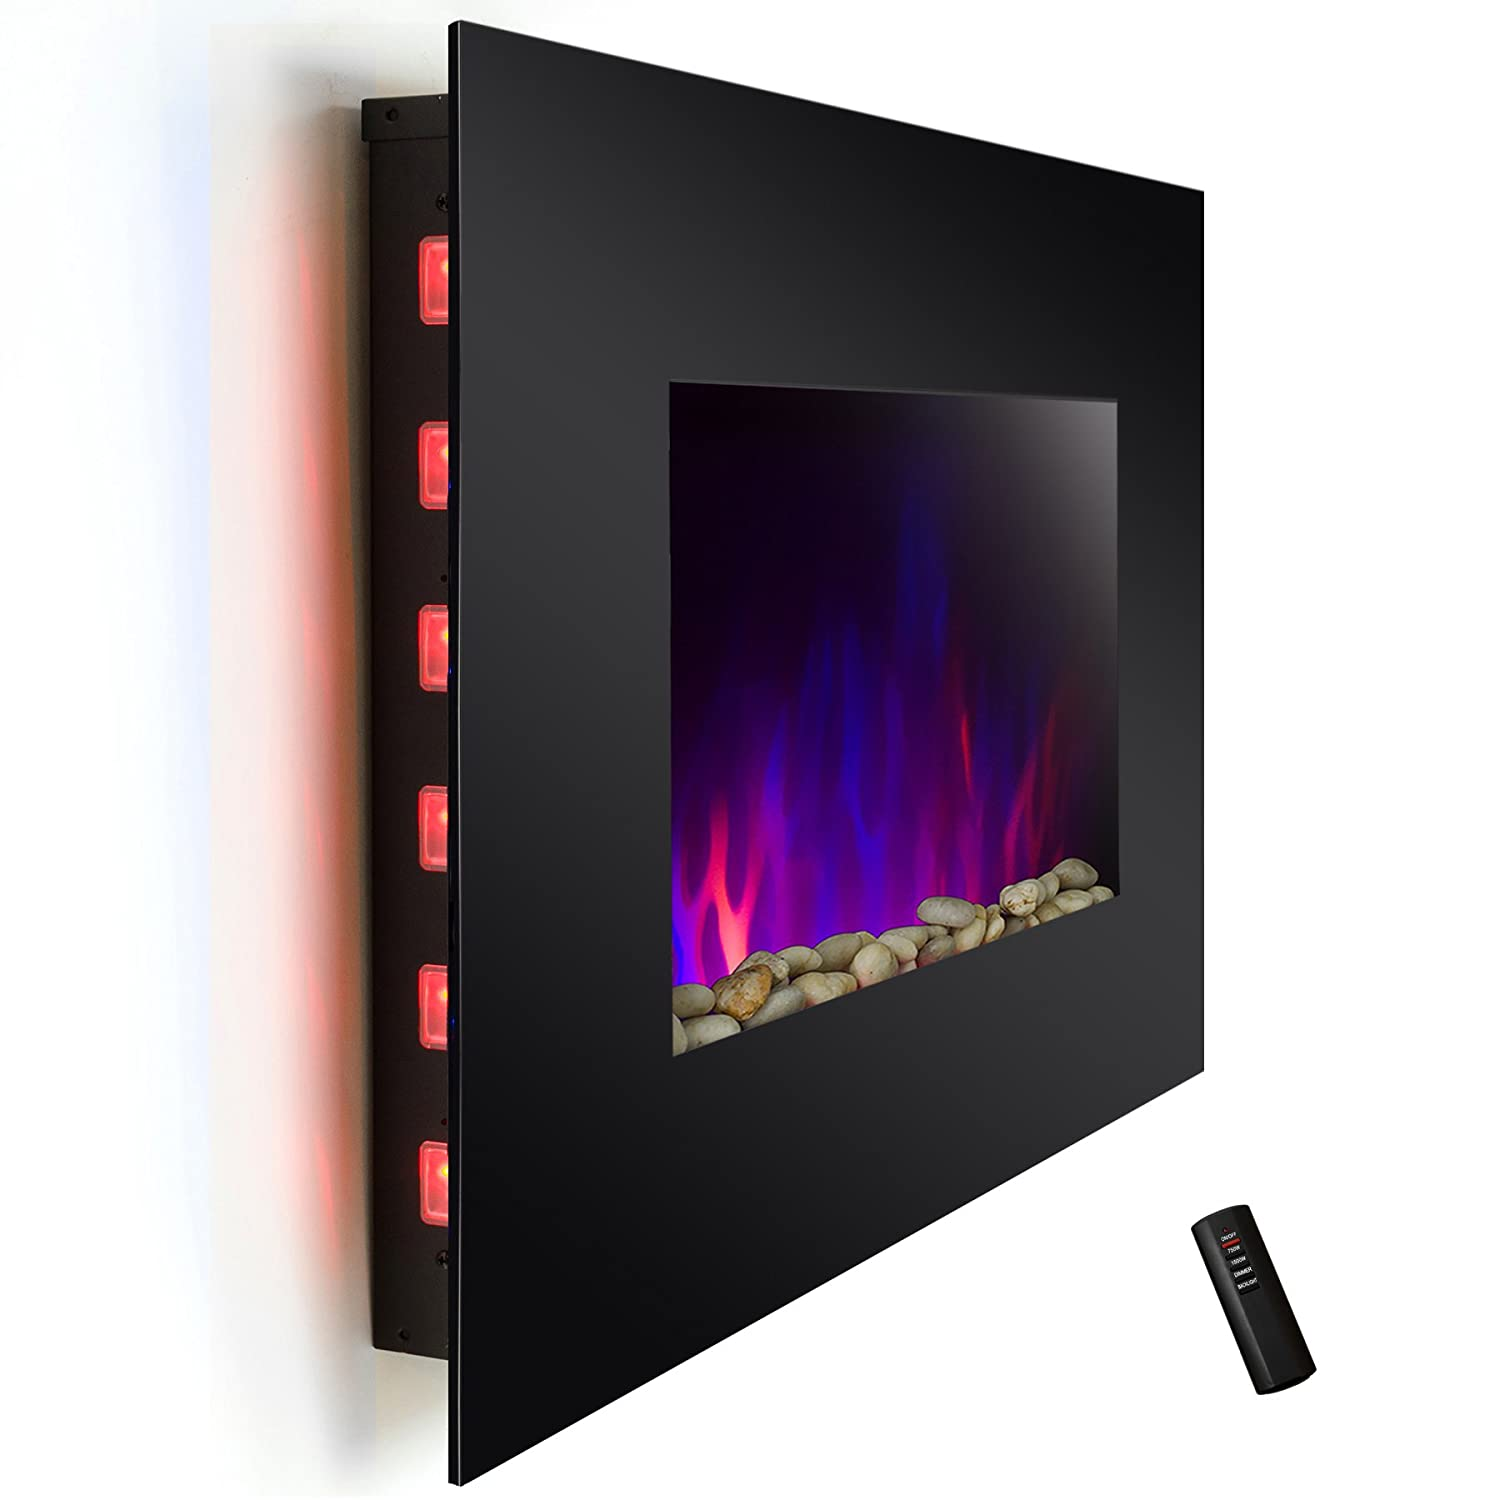 36  Electric Wall Mount Fireplace Heater with Backlight and Remote Control    Wall Mounted Fireplace   Amazon com36  Electric Wall Mount Fireplace Heater with Backlight and Remote  . Electric Wall Fireplace Heaters. Home Design Ideas